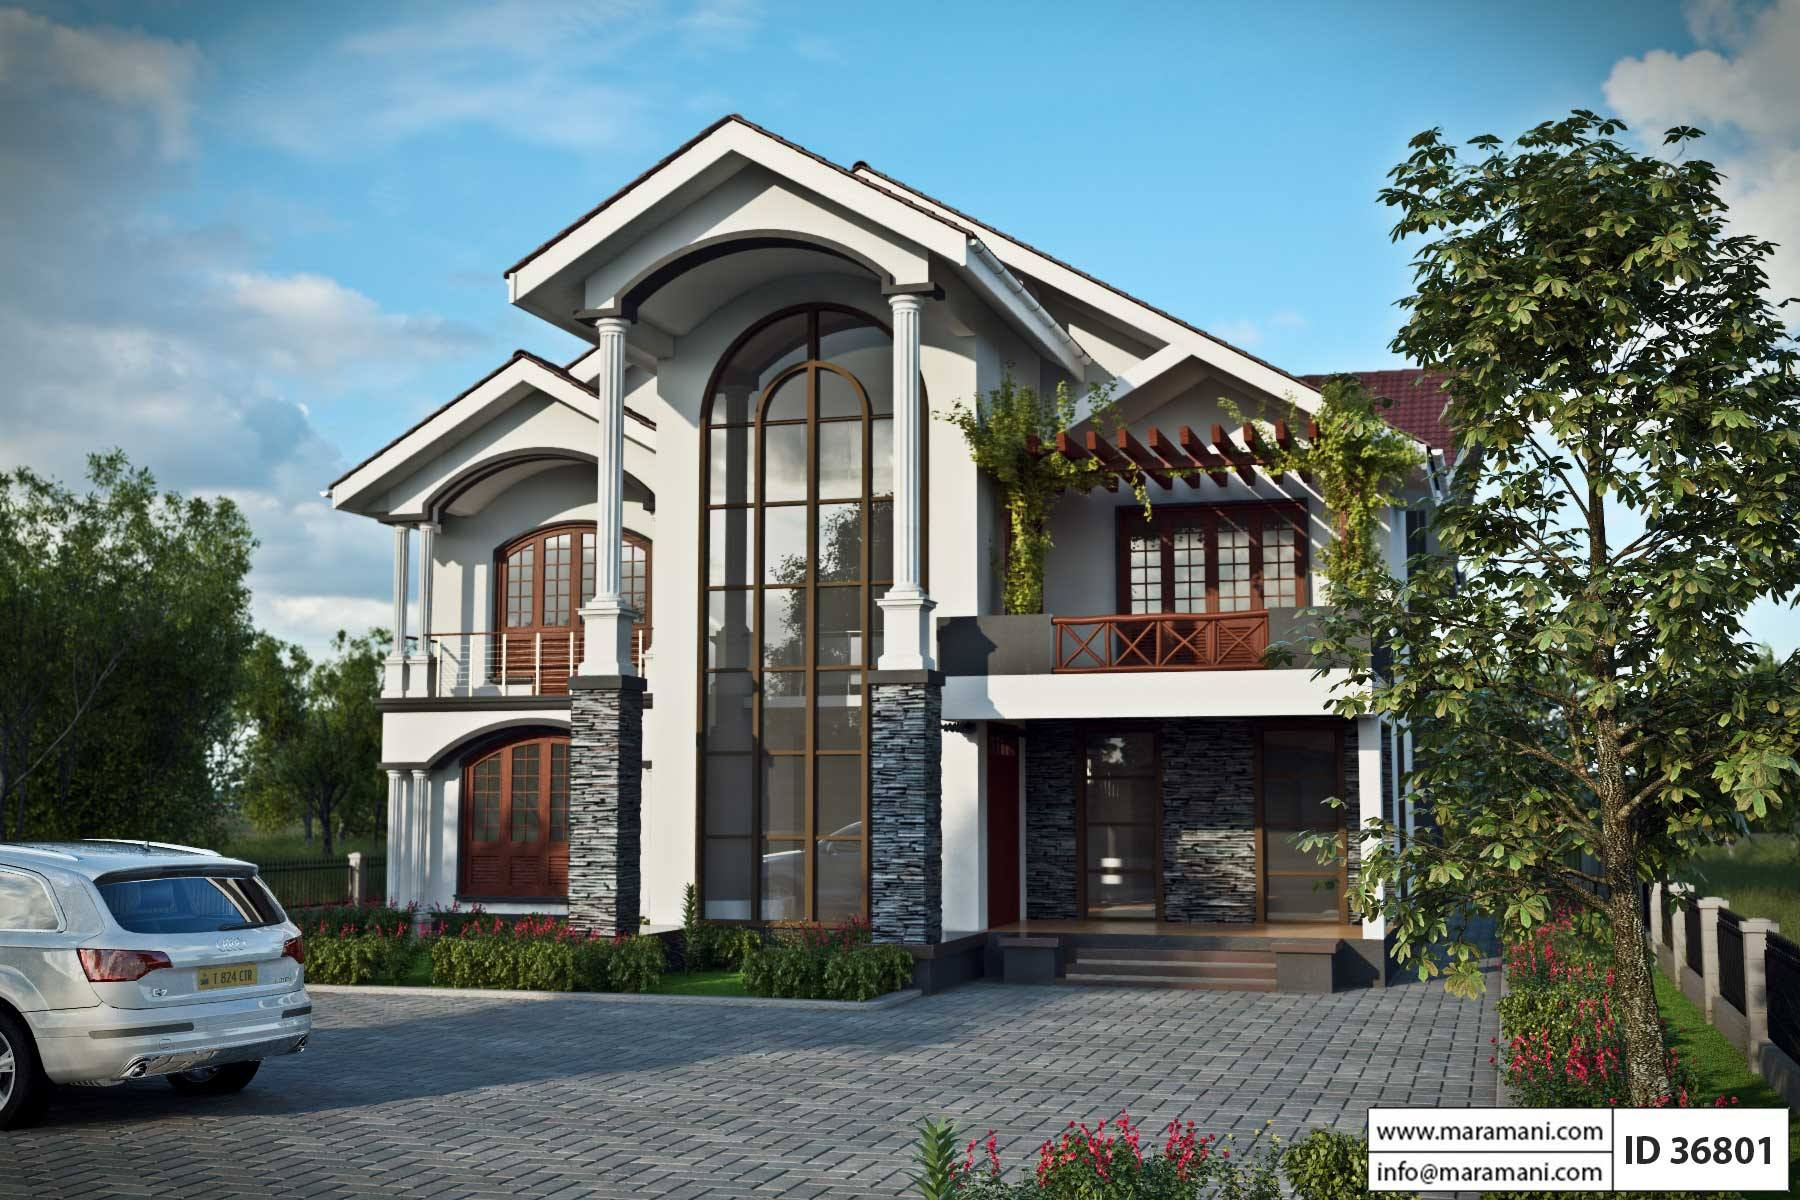 six bedroom house plan id 36801 house designs by maramani rh maramani com 6 bedroom house designs victoria 6 bedroom house designs western australia